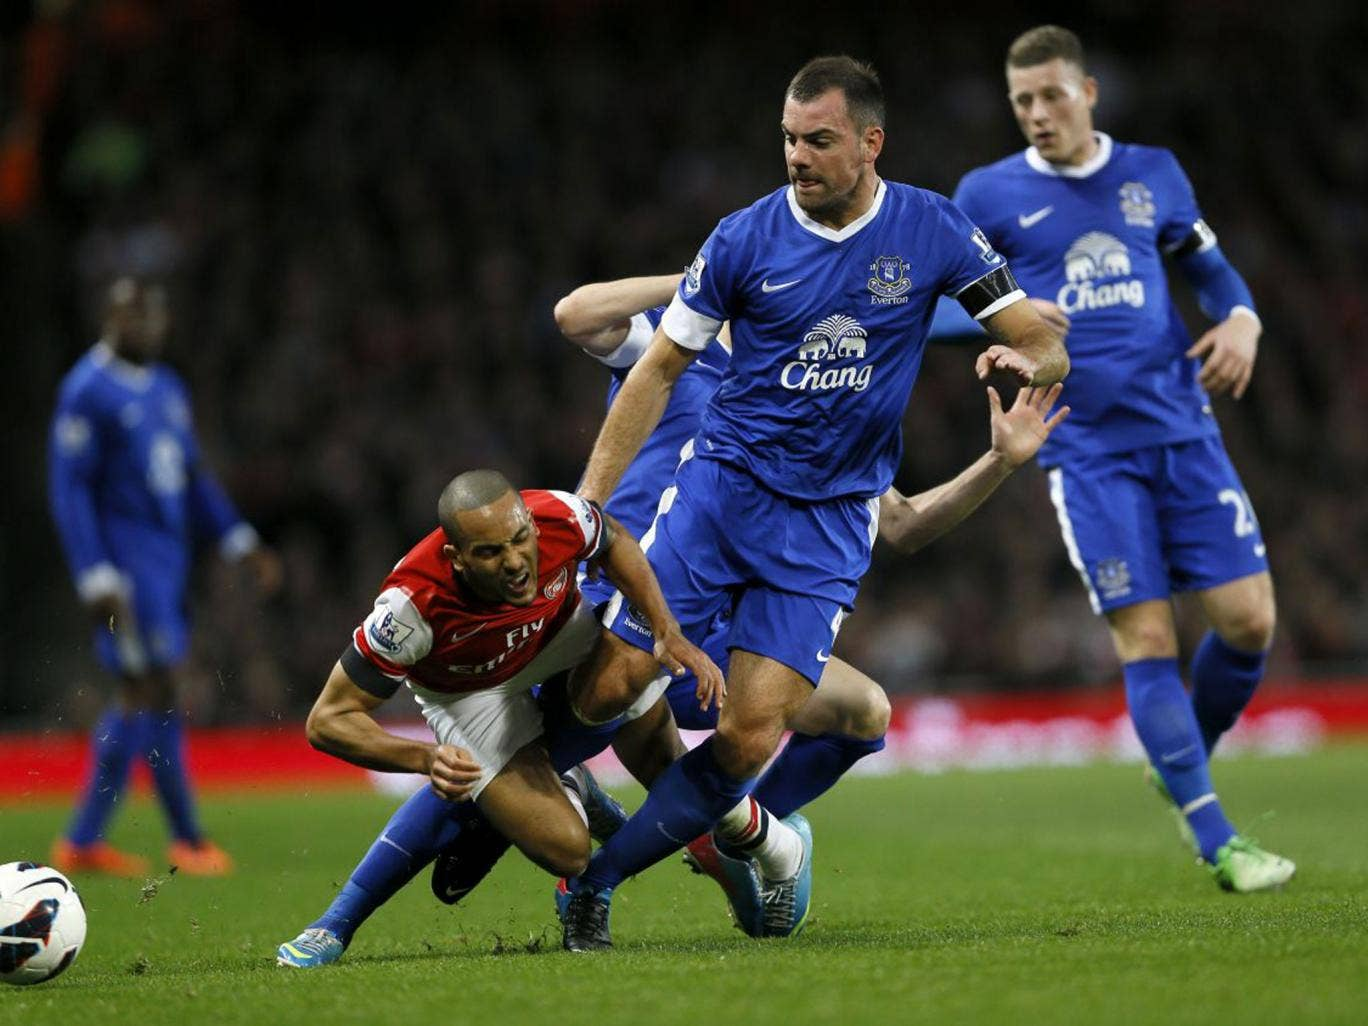 Darron Gibson received a yellow card for his challenge on Theo Walcott, but was not sent off for a second similar tackle